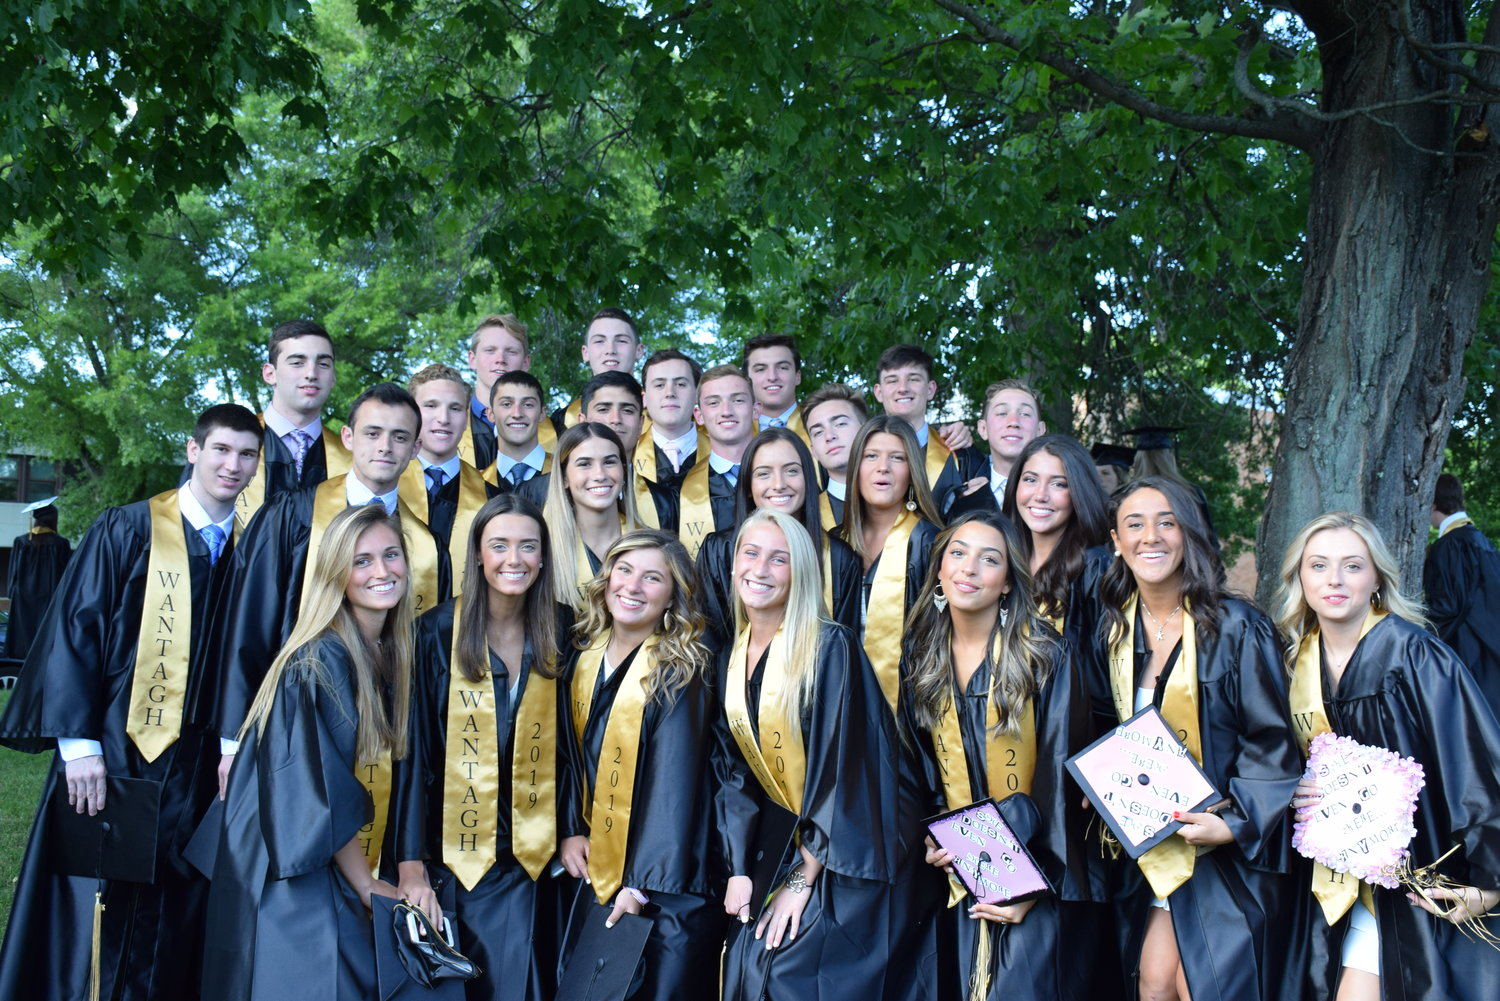 It's a  tradition for graduates to pose for photos on the front lawn of Wantagh High before graduation, according to a Wantagh School District news release.